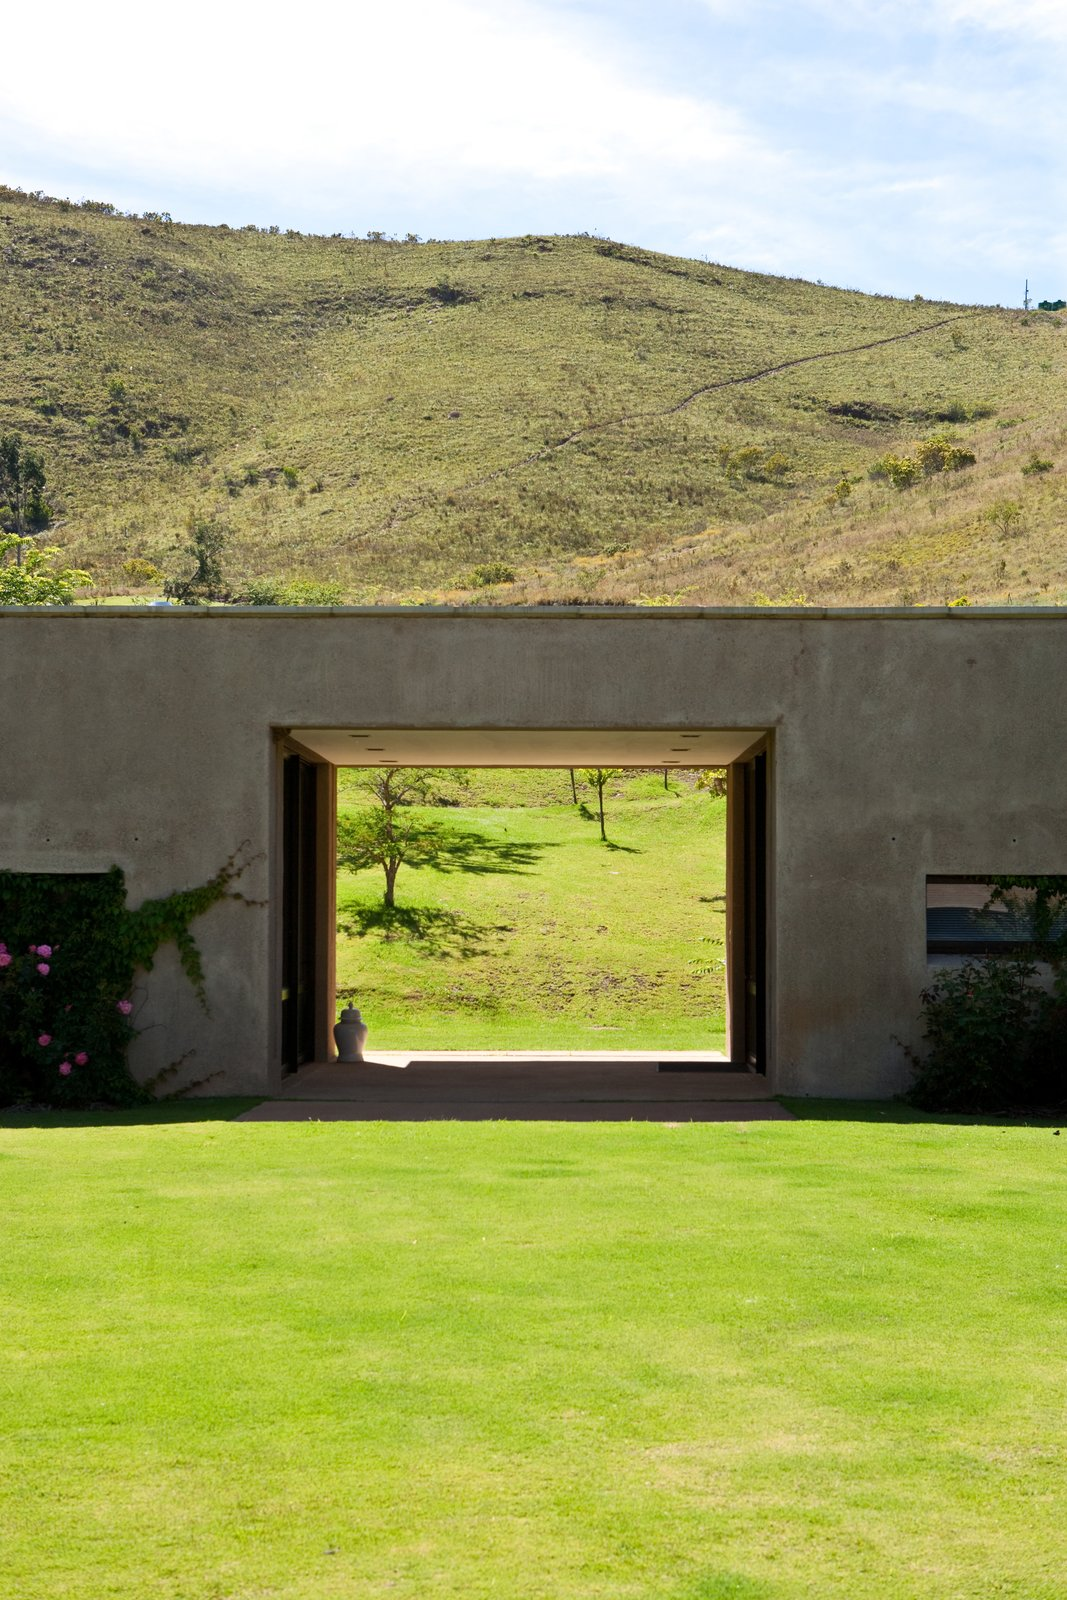 Outdoor, Back Yard, Grass, Shrubs, Trees, and Slope Herman describes the shape of a sleeping dragon nestled in the mountains. In keeping with a Feng Shui philosophy, he intentionally left a hole in the building to allow the beast a clear view.  Photo 7 of 9 in This South African Villa Lets You Bask in Divine Views